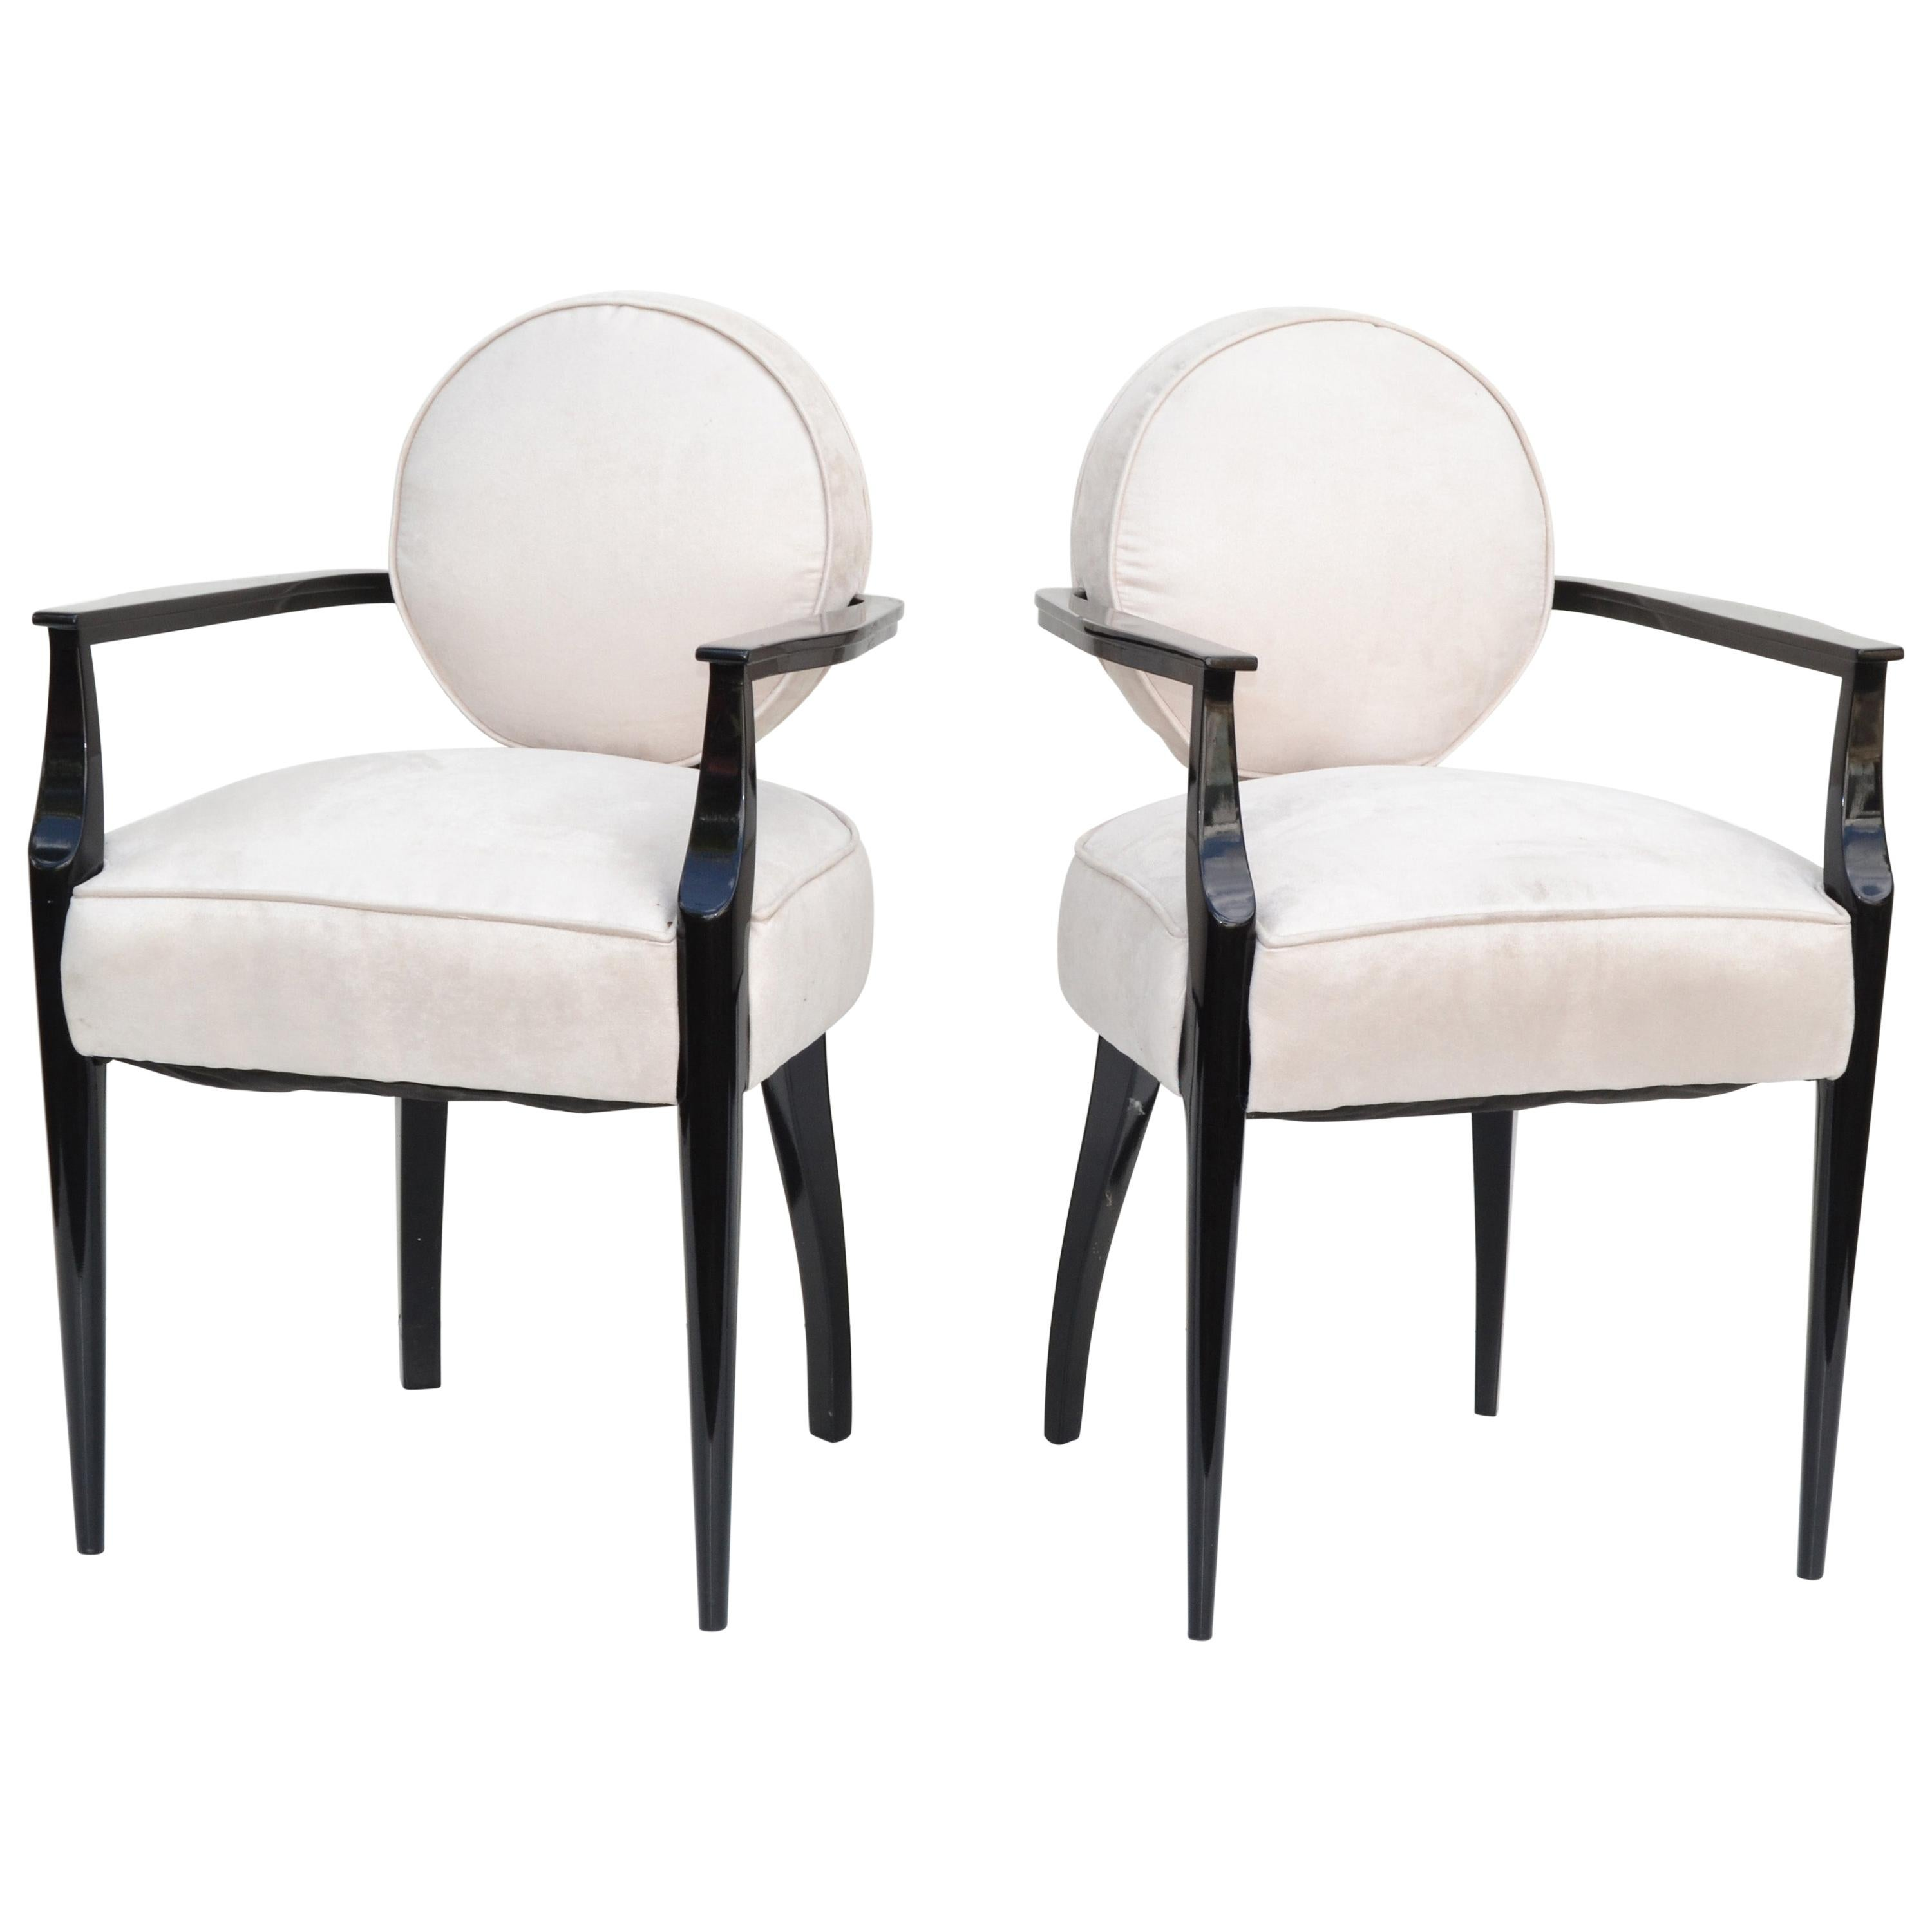 French Art Deco Armchair Dominique style ultrasuede Fabric, Pair